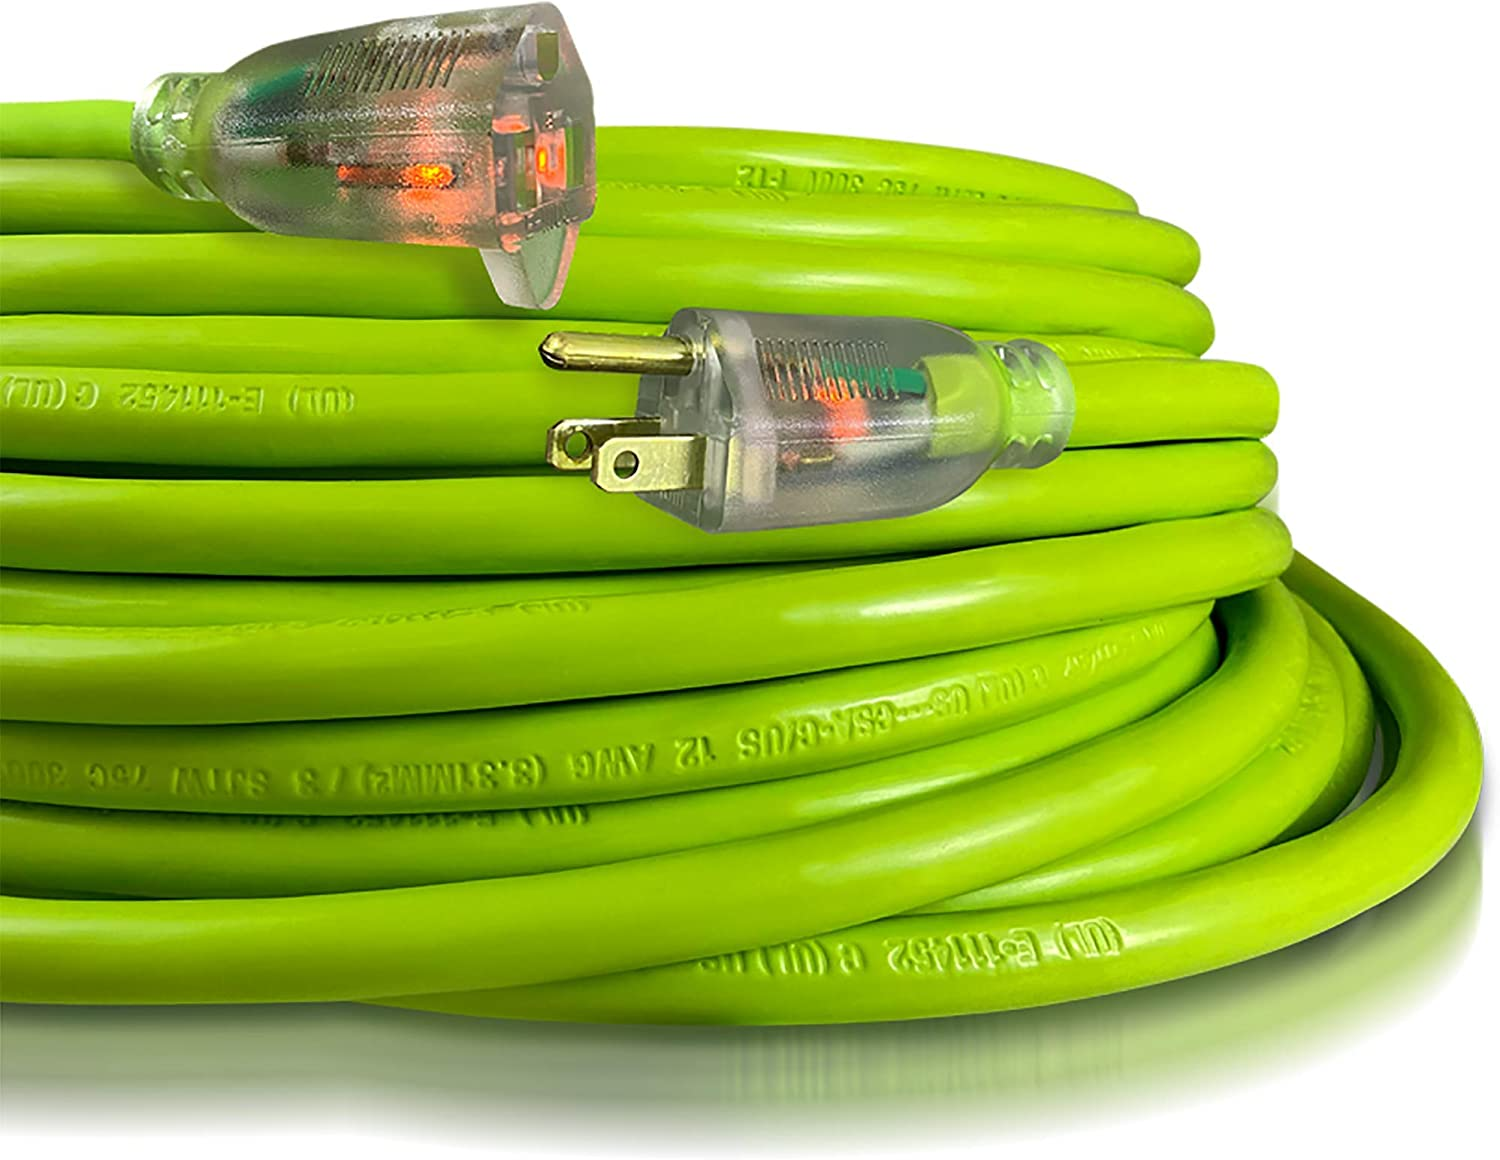 USW 12 3 100ft Washington Mall Cold Weather Extension Lighted Plugs 2 Popular shop is the lowest price challenge Cord with